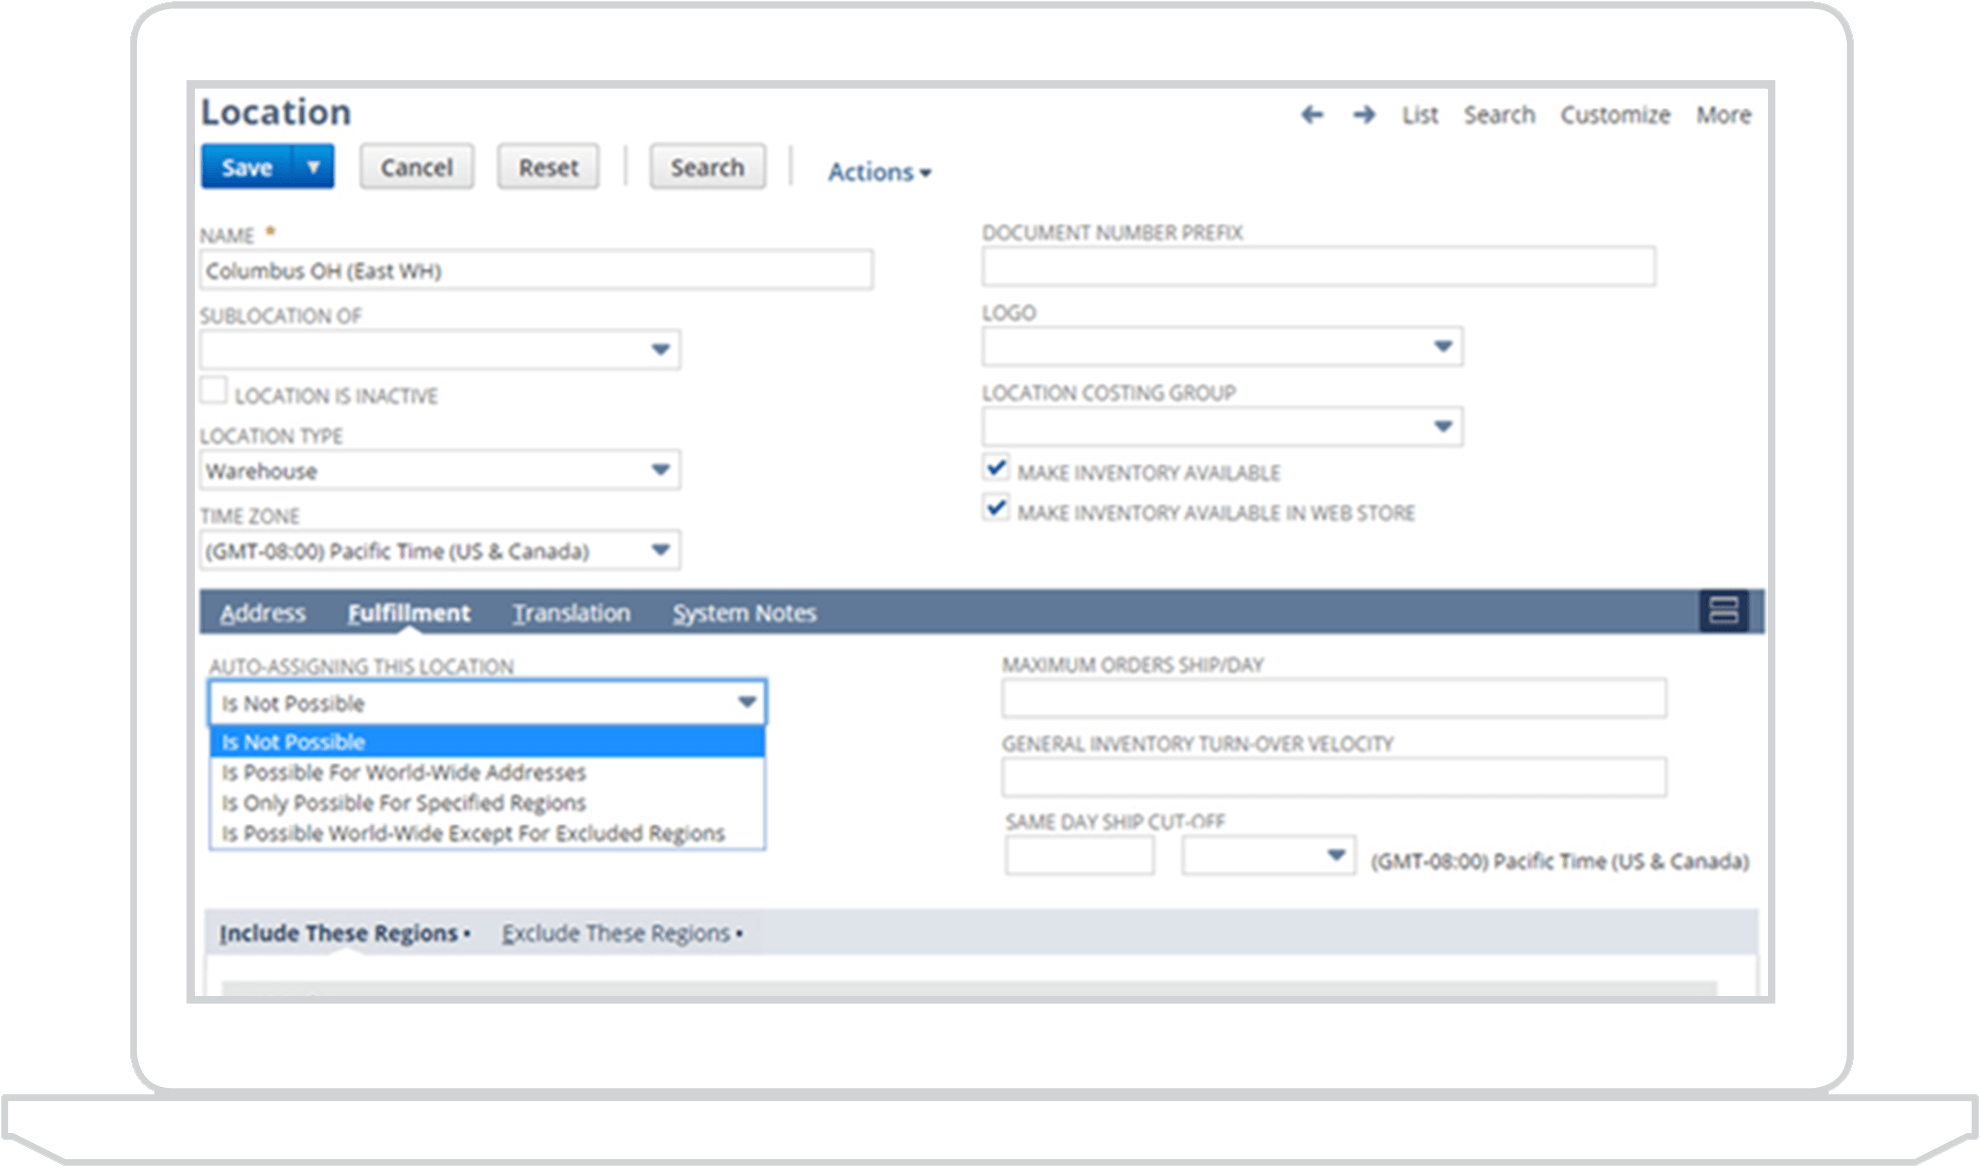 Order management fulfillment software netsuite for Netsuite document management